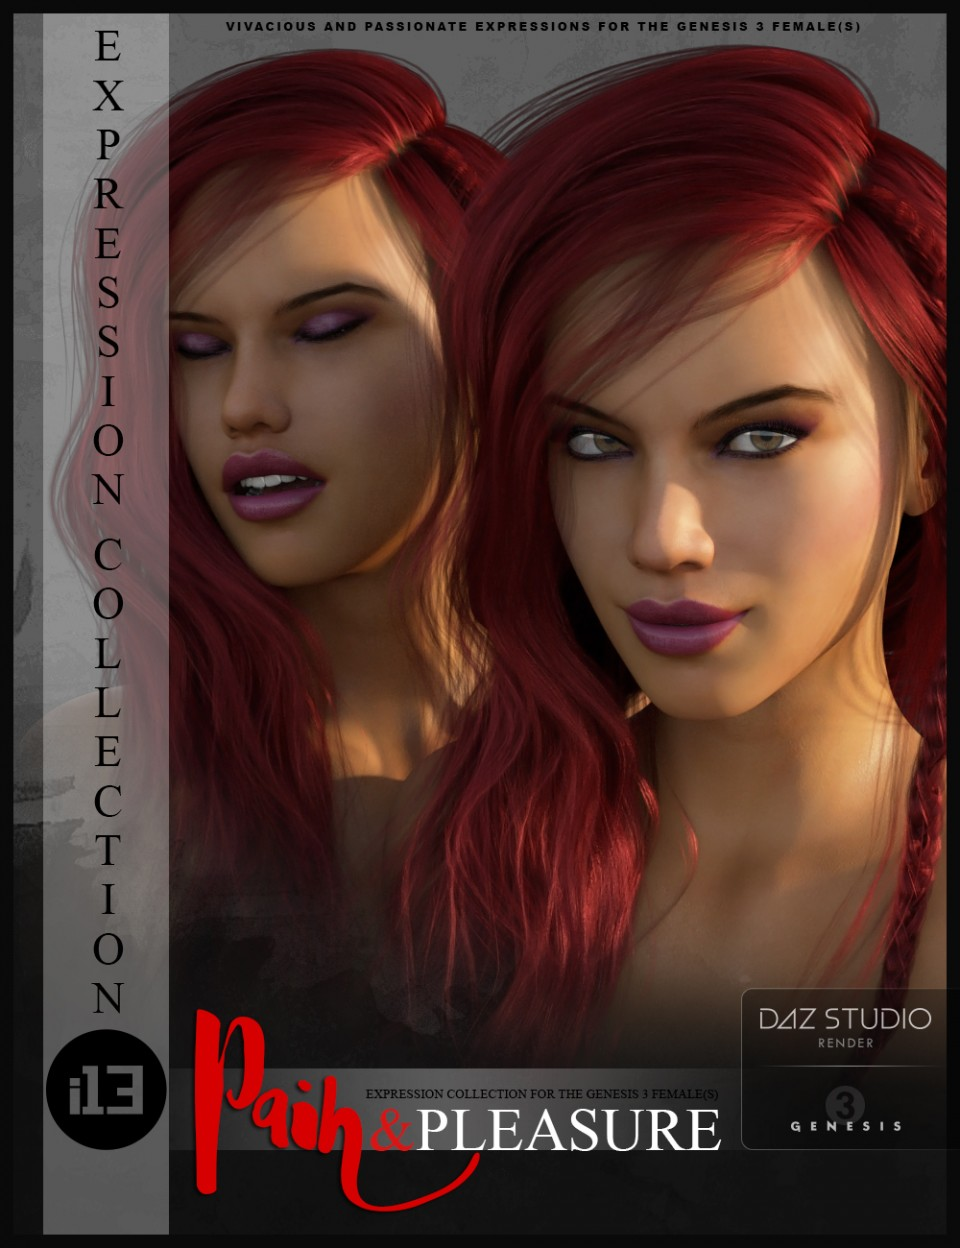 i13 Pain and Pleasure Expressions for the Genesis 3 Female(s)_DAZ3D下载站